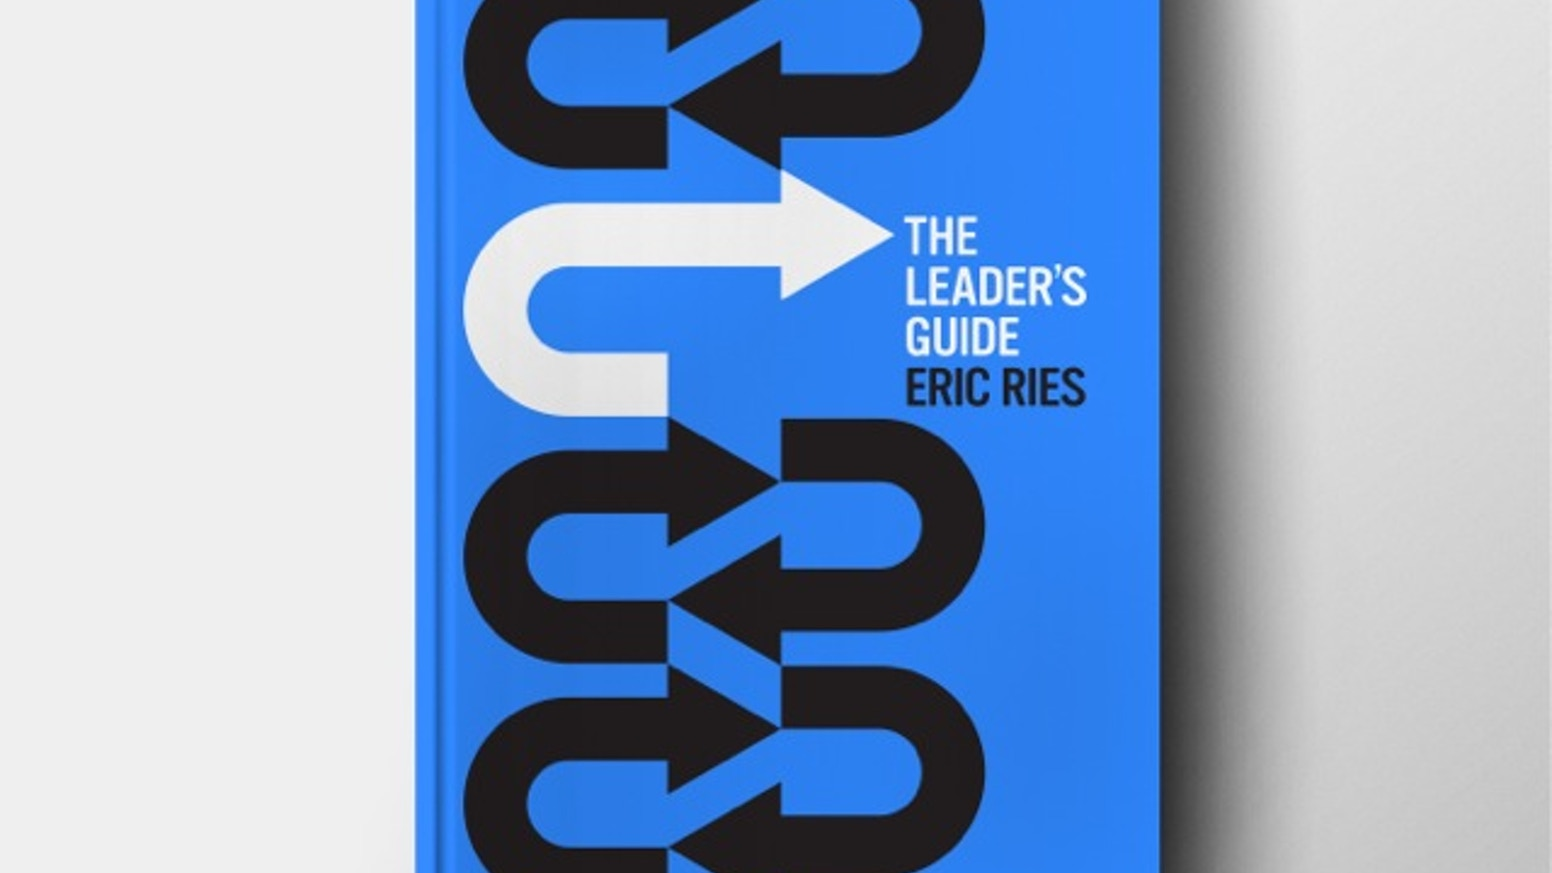 A 250-page exclusive book + a backer-only community for new and experienced practitioners of the Lean Startup principles.